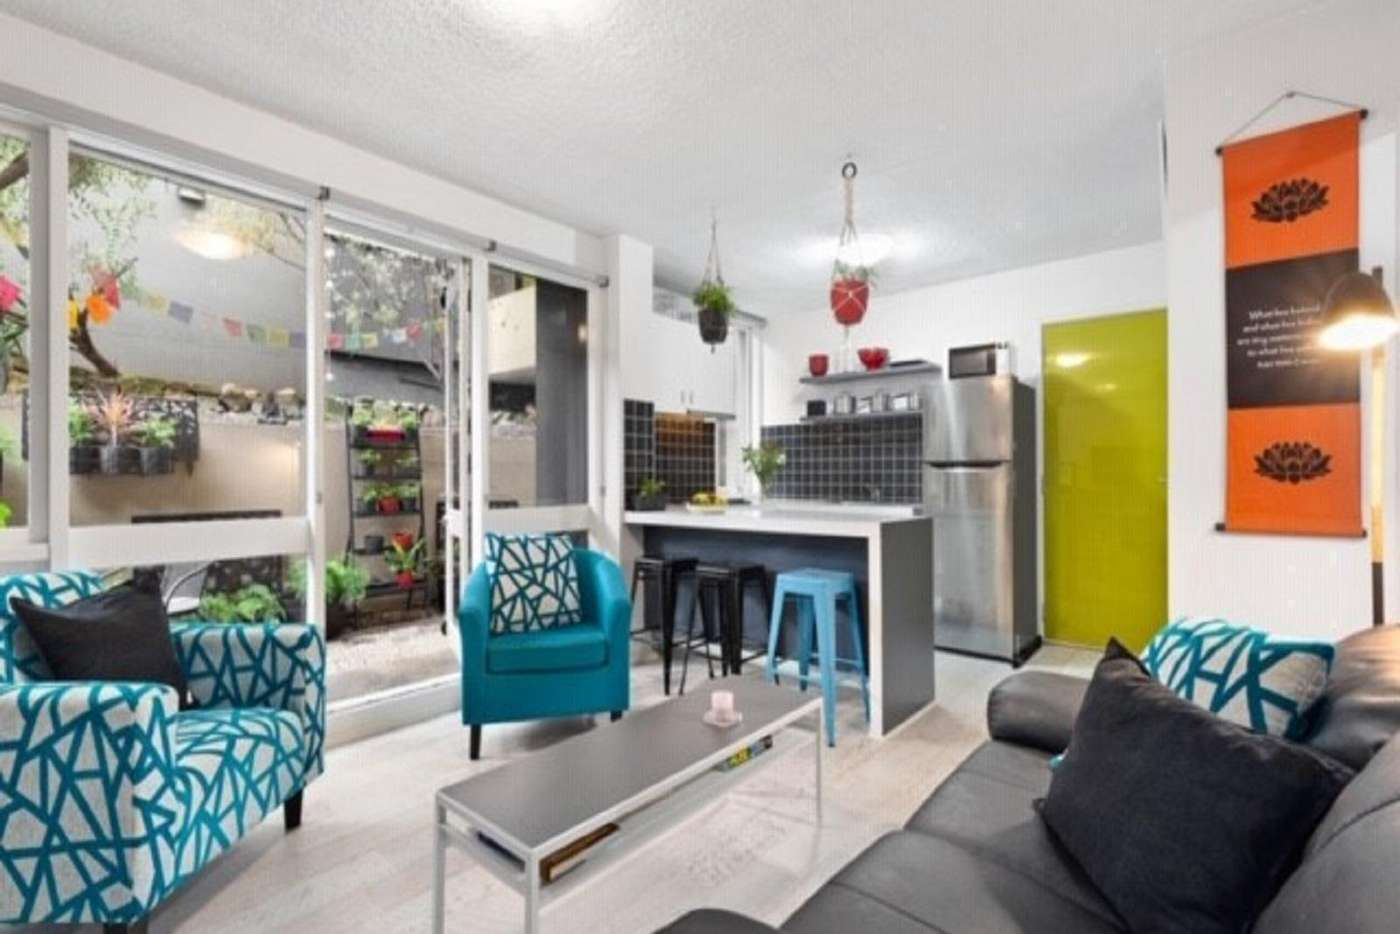 Main view of Homely apartment listing, 2/62 Cunningham Street, Northcote VIC 3070